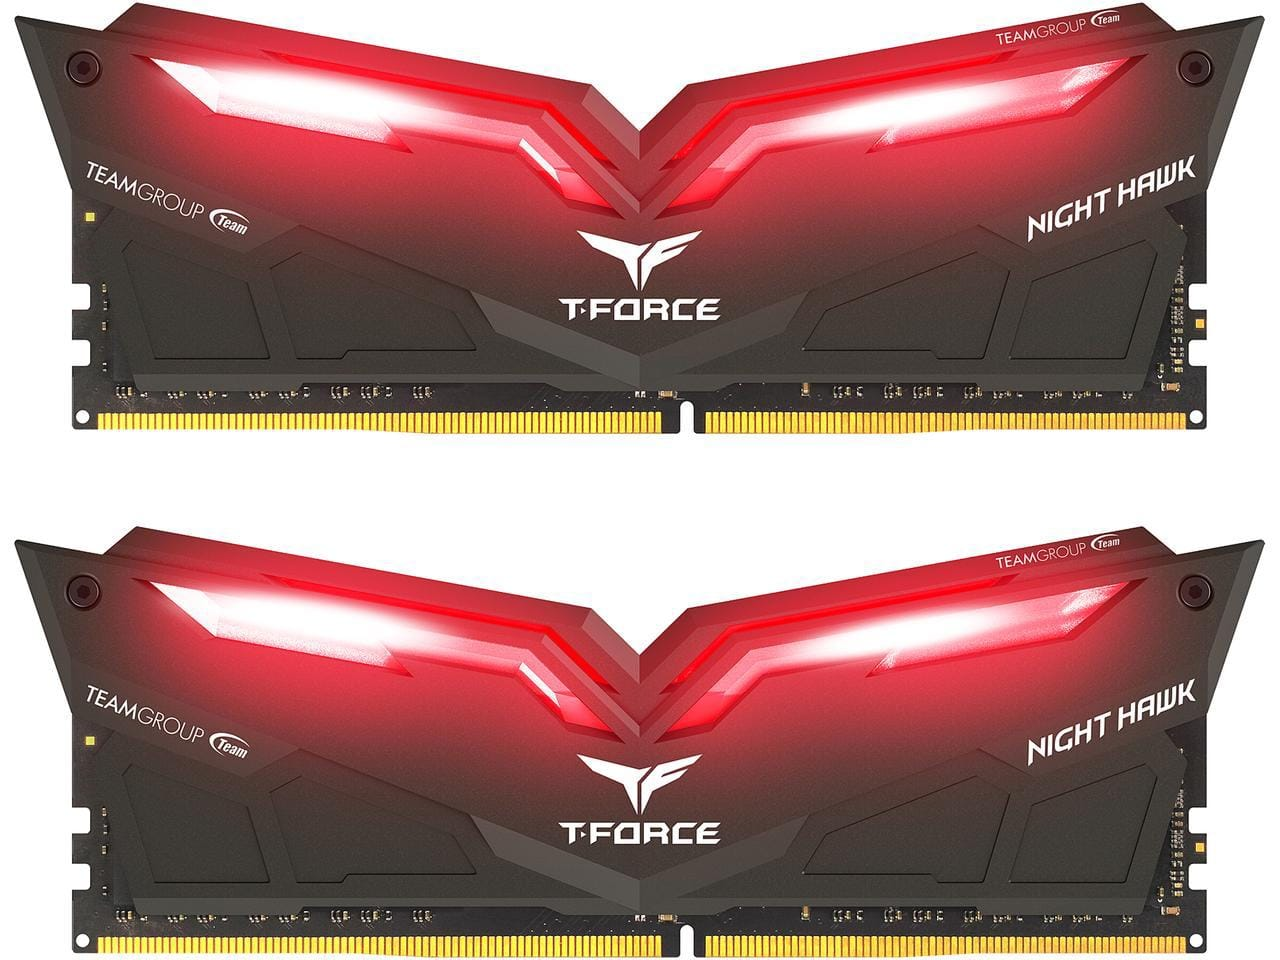 $102.99 - Team T-Force Night Hawk 16GB (2 x 8GB) 288-Pin DDR4 3000 (PC4 24000) LED Lit Desktop Memory - AMD RYZEN Compatible